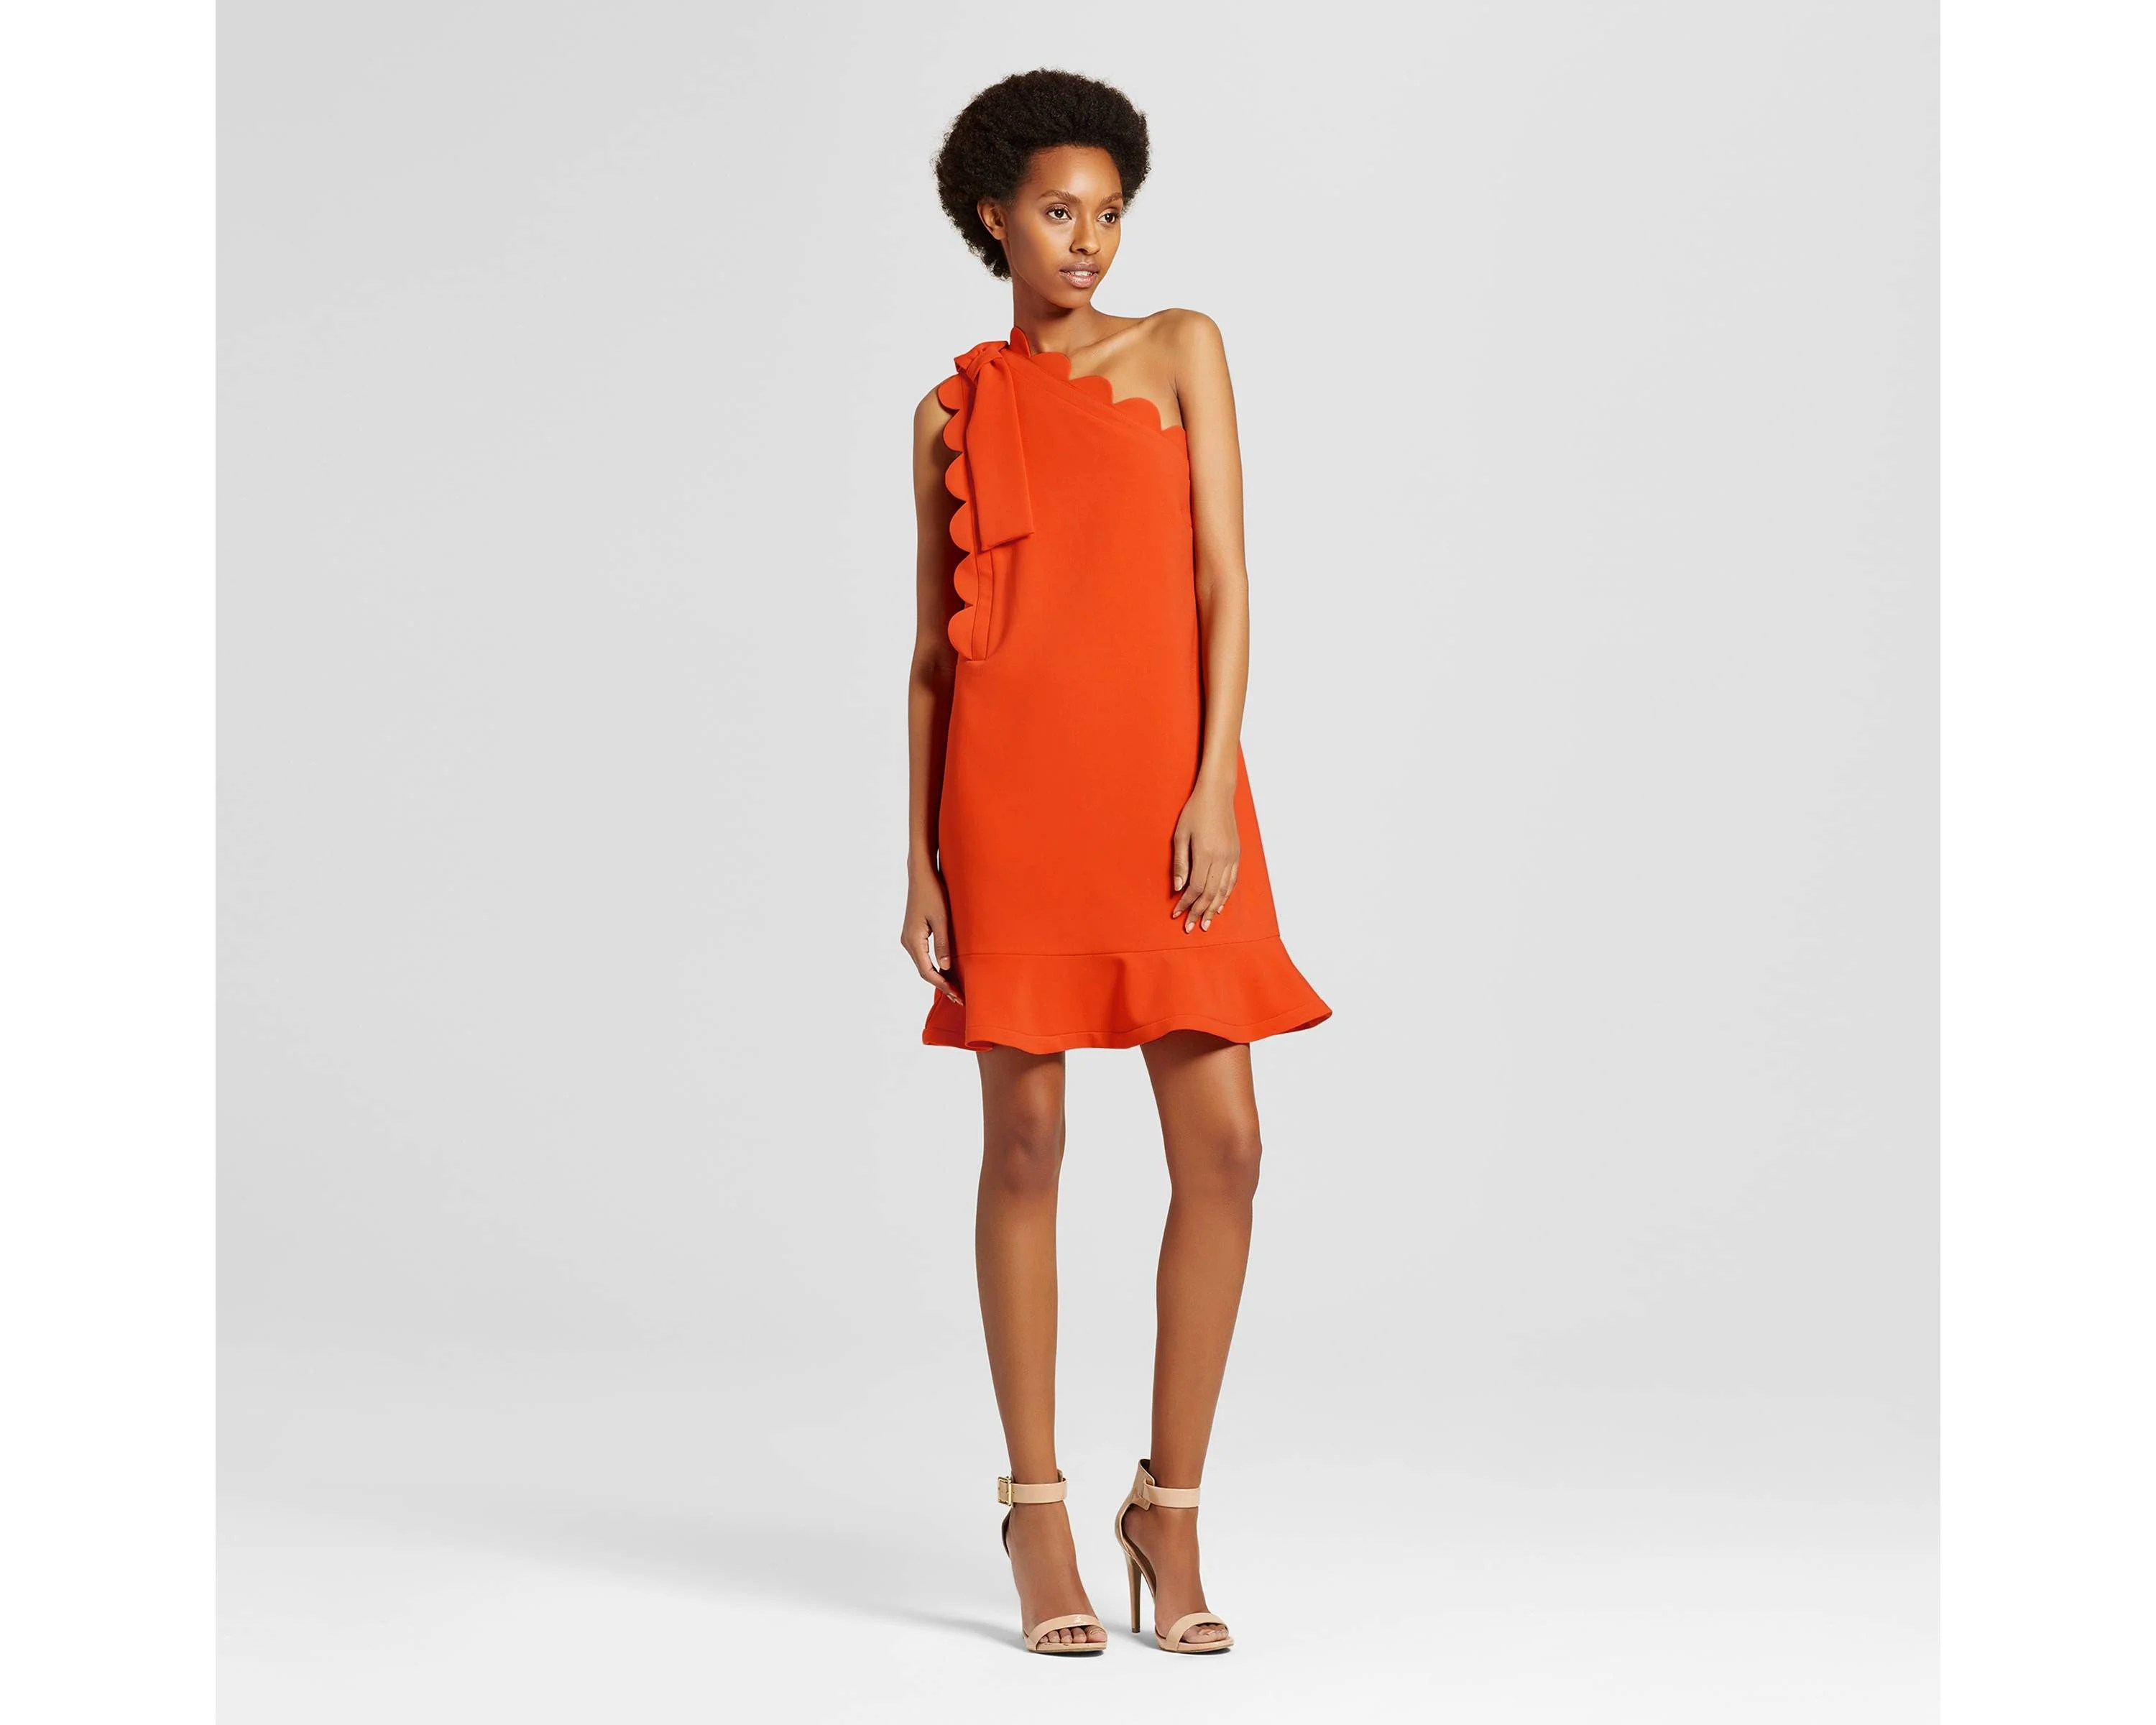 Orange One Shoulder Dress with Bow and Scallop Trim